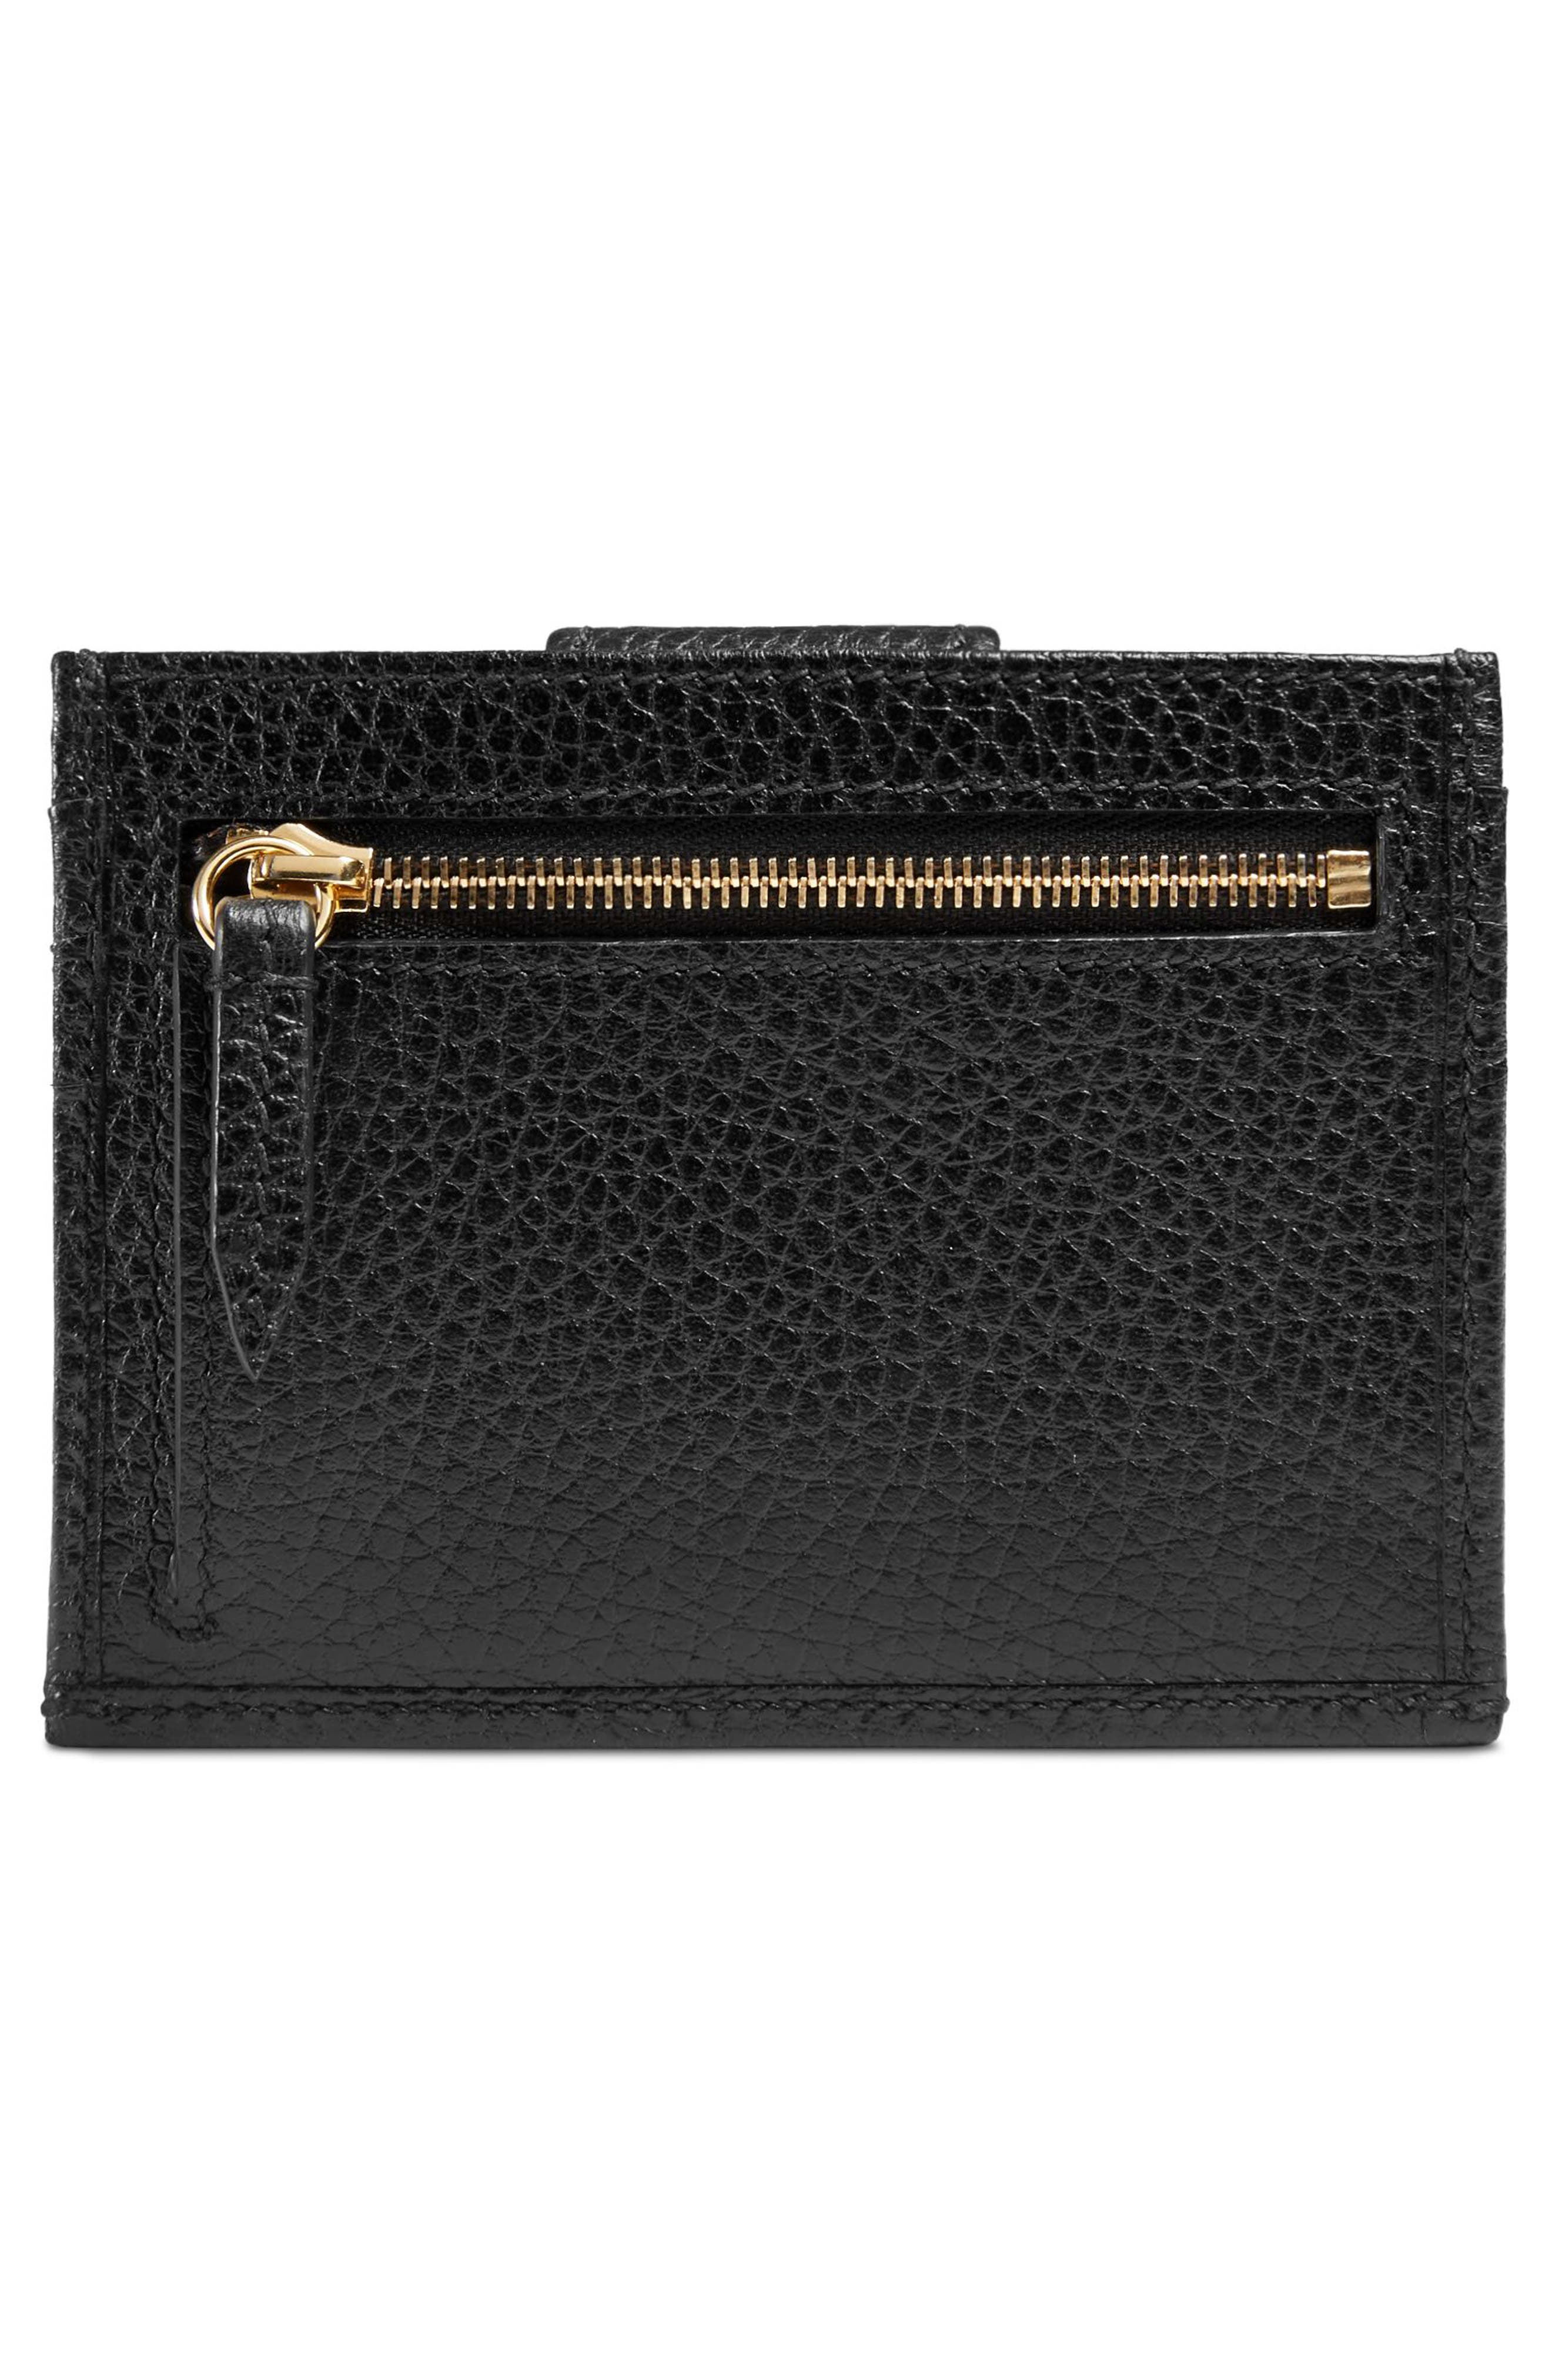 GG Marmont Leather Card Case,                             Alternate thumbnail 3, color,                             Nero